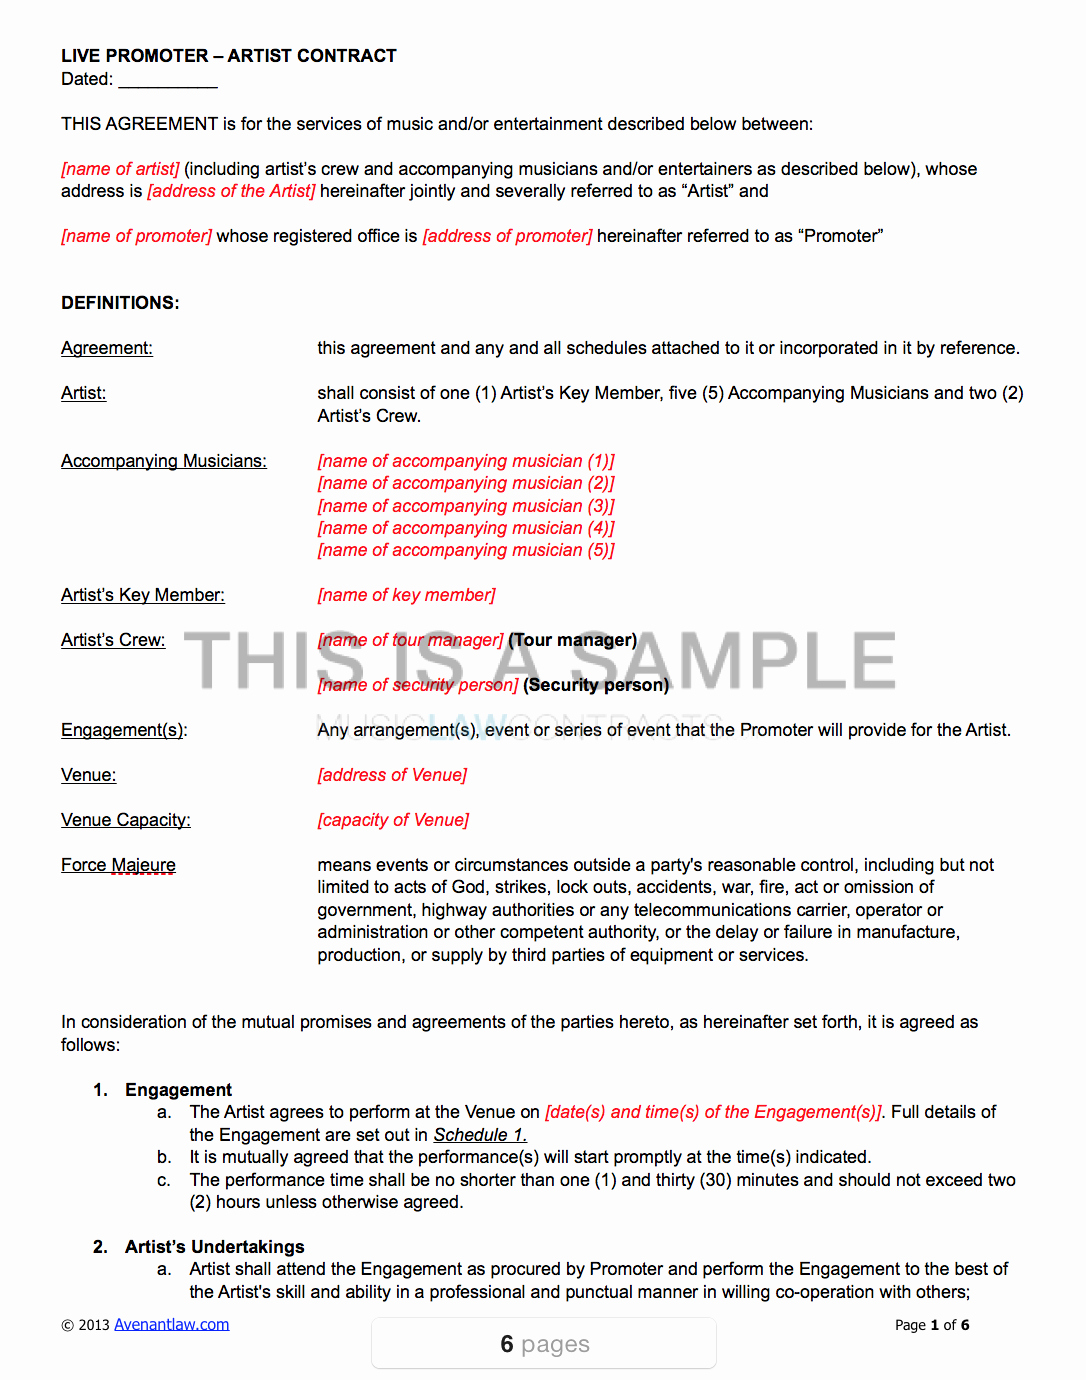 Music Artist Contract Template New Live Promoter Artist Contract Template